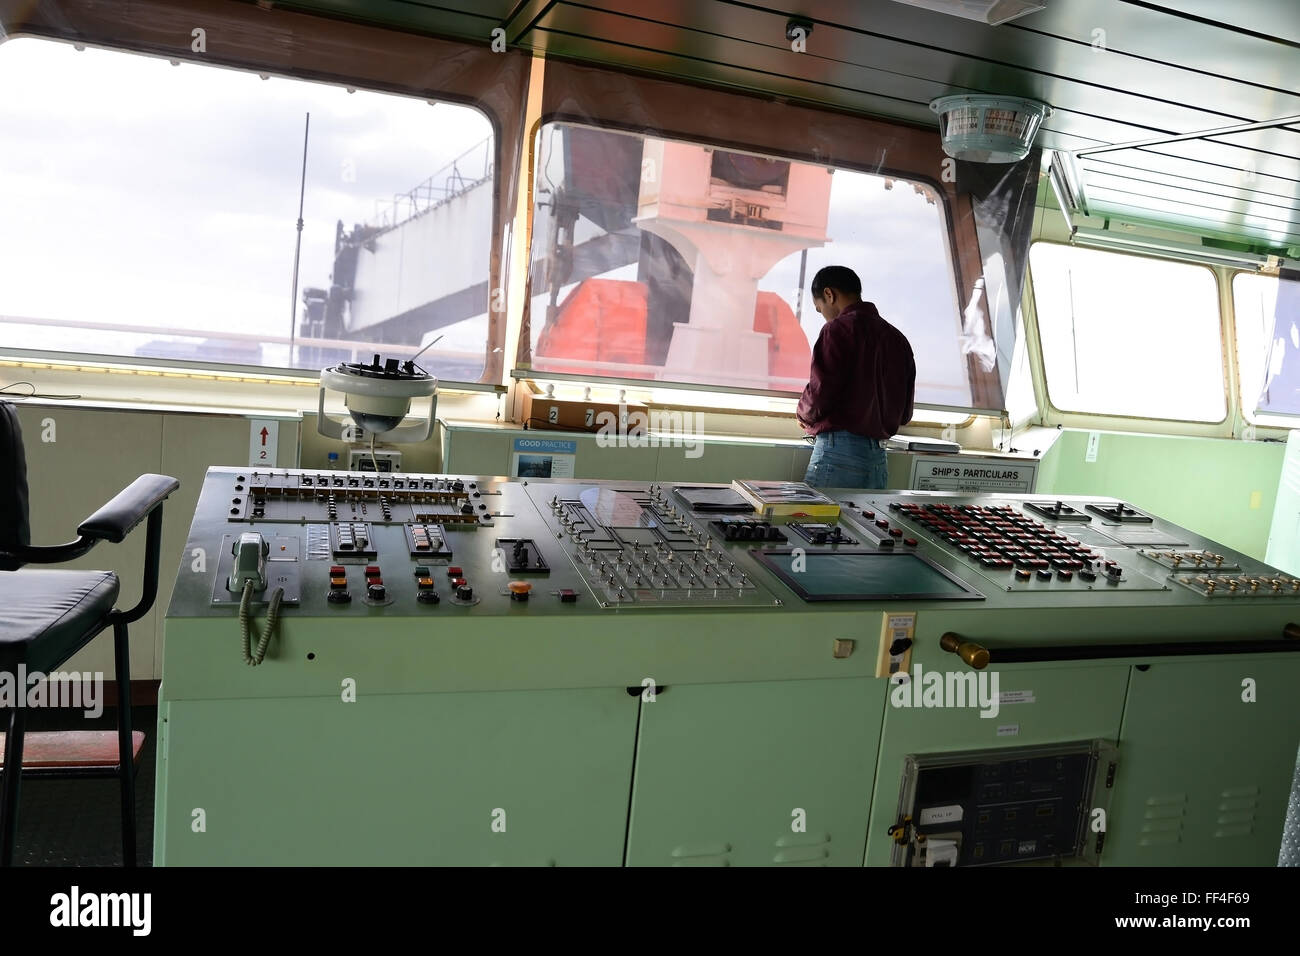 Interior of the Bridge, control center of the ship on container ship UTRILLO - Stock Image